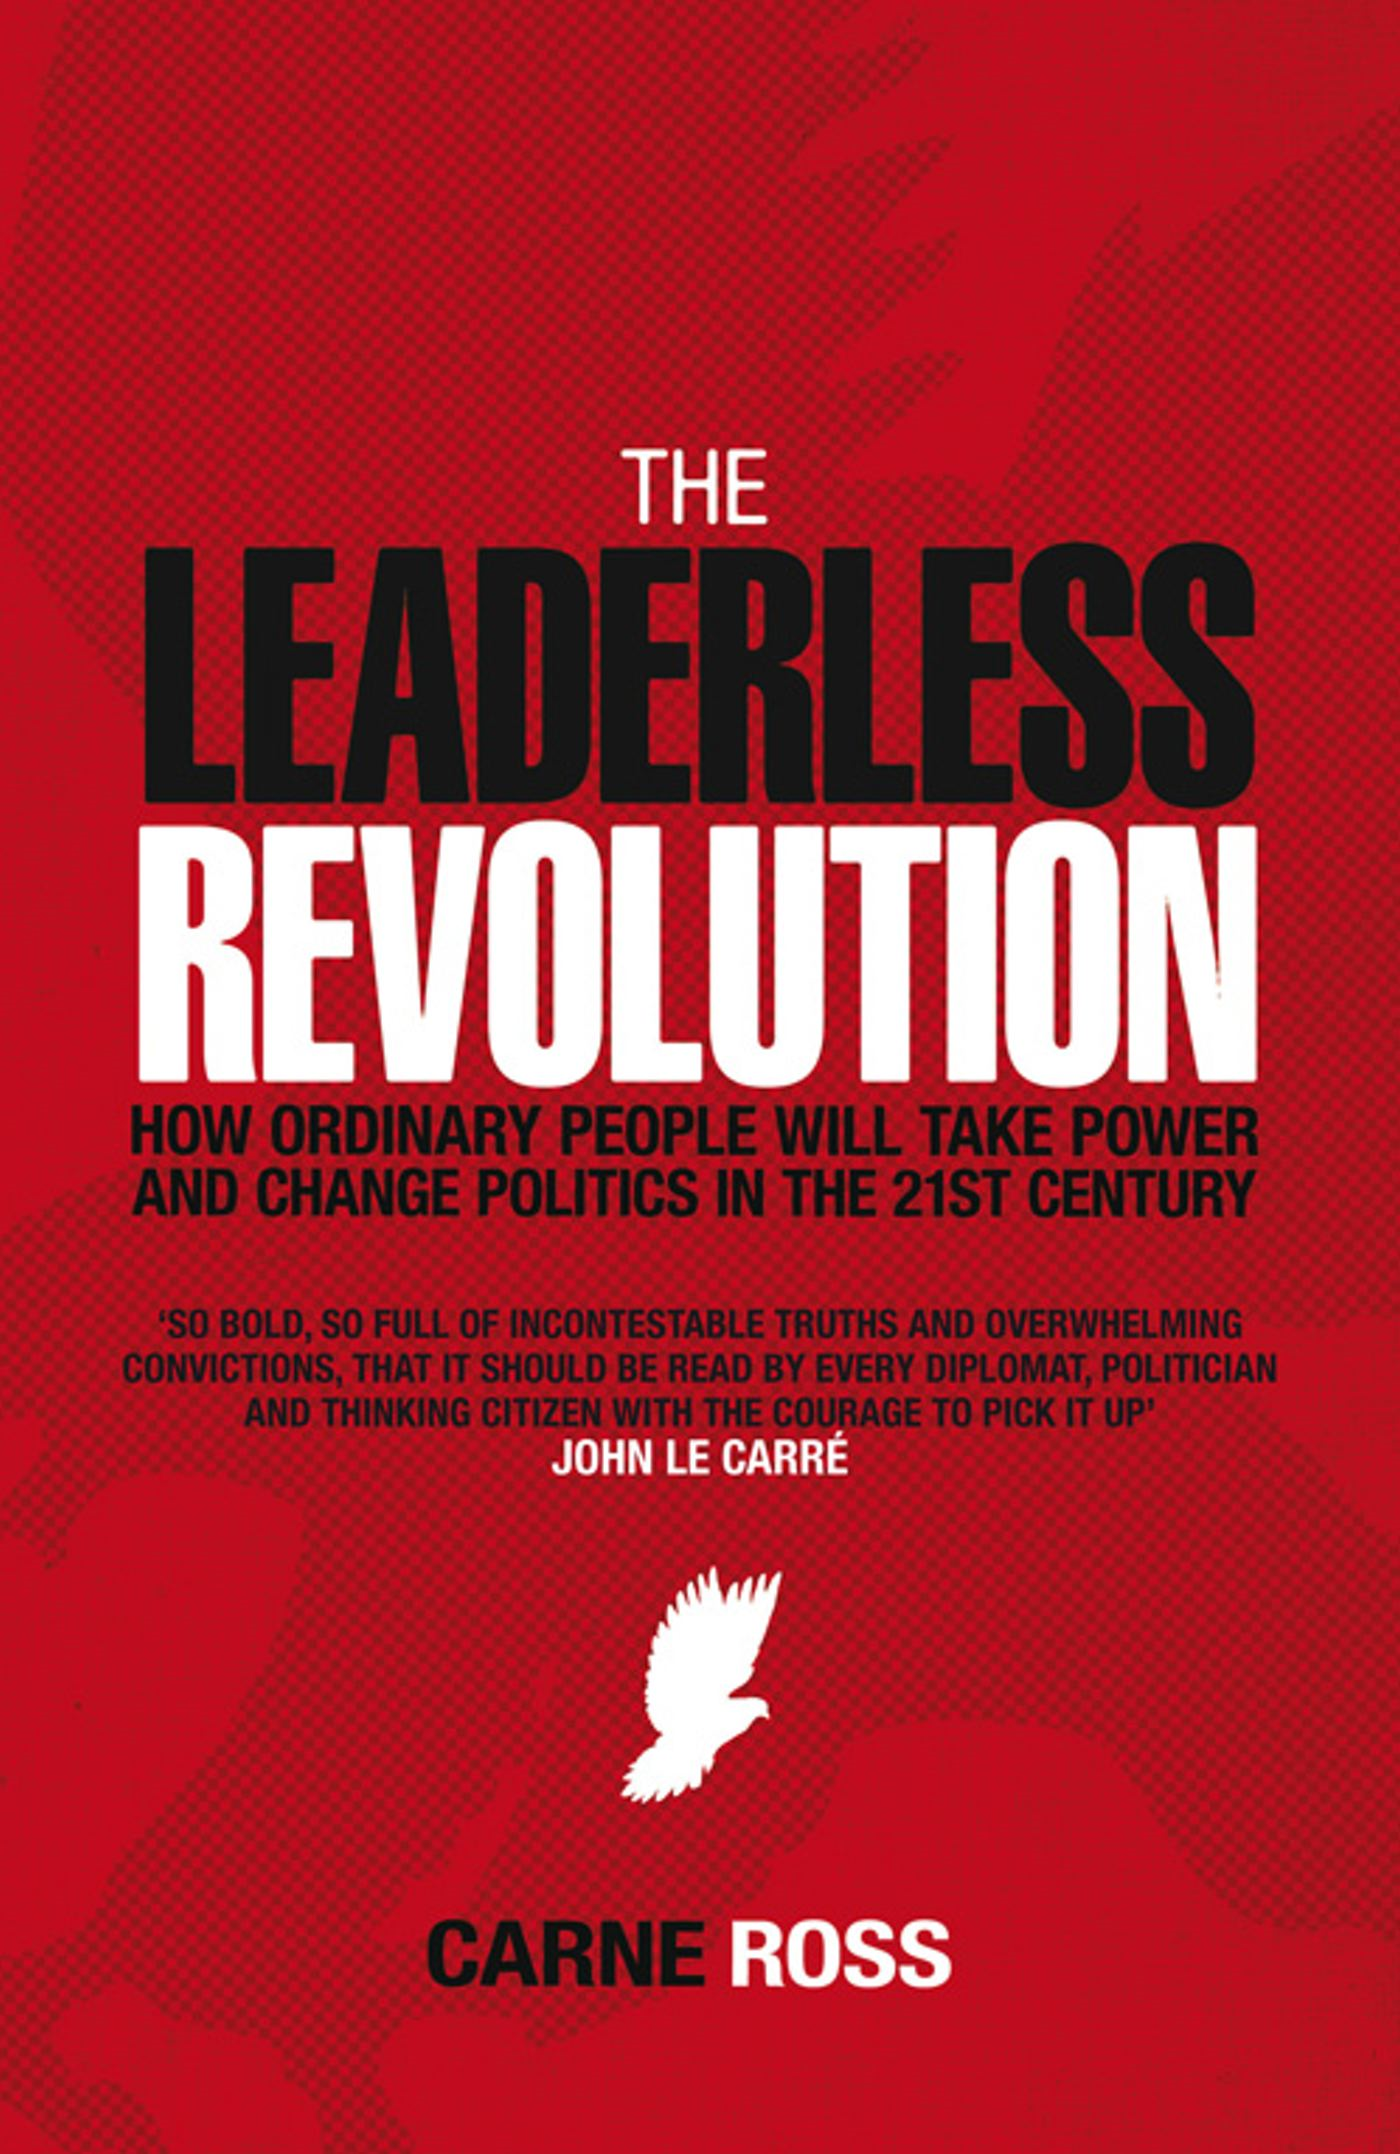 The Leaderless Revolution How Ordinary People will Take Power and Change Politics in the 21st Century